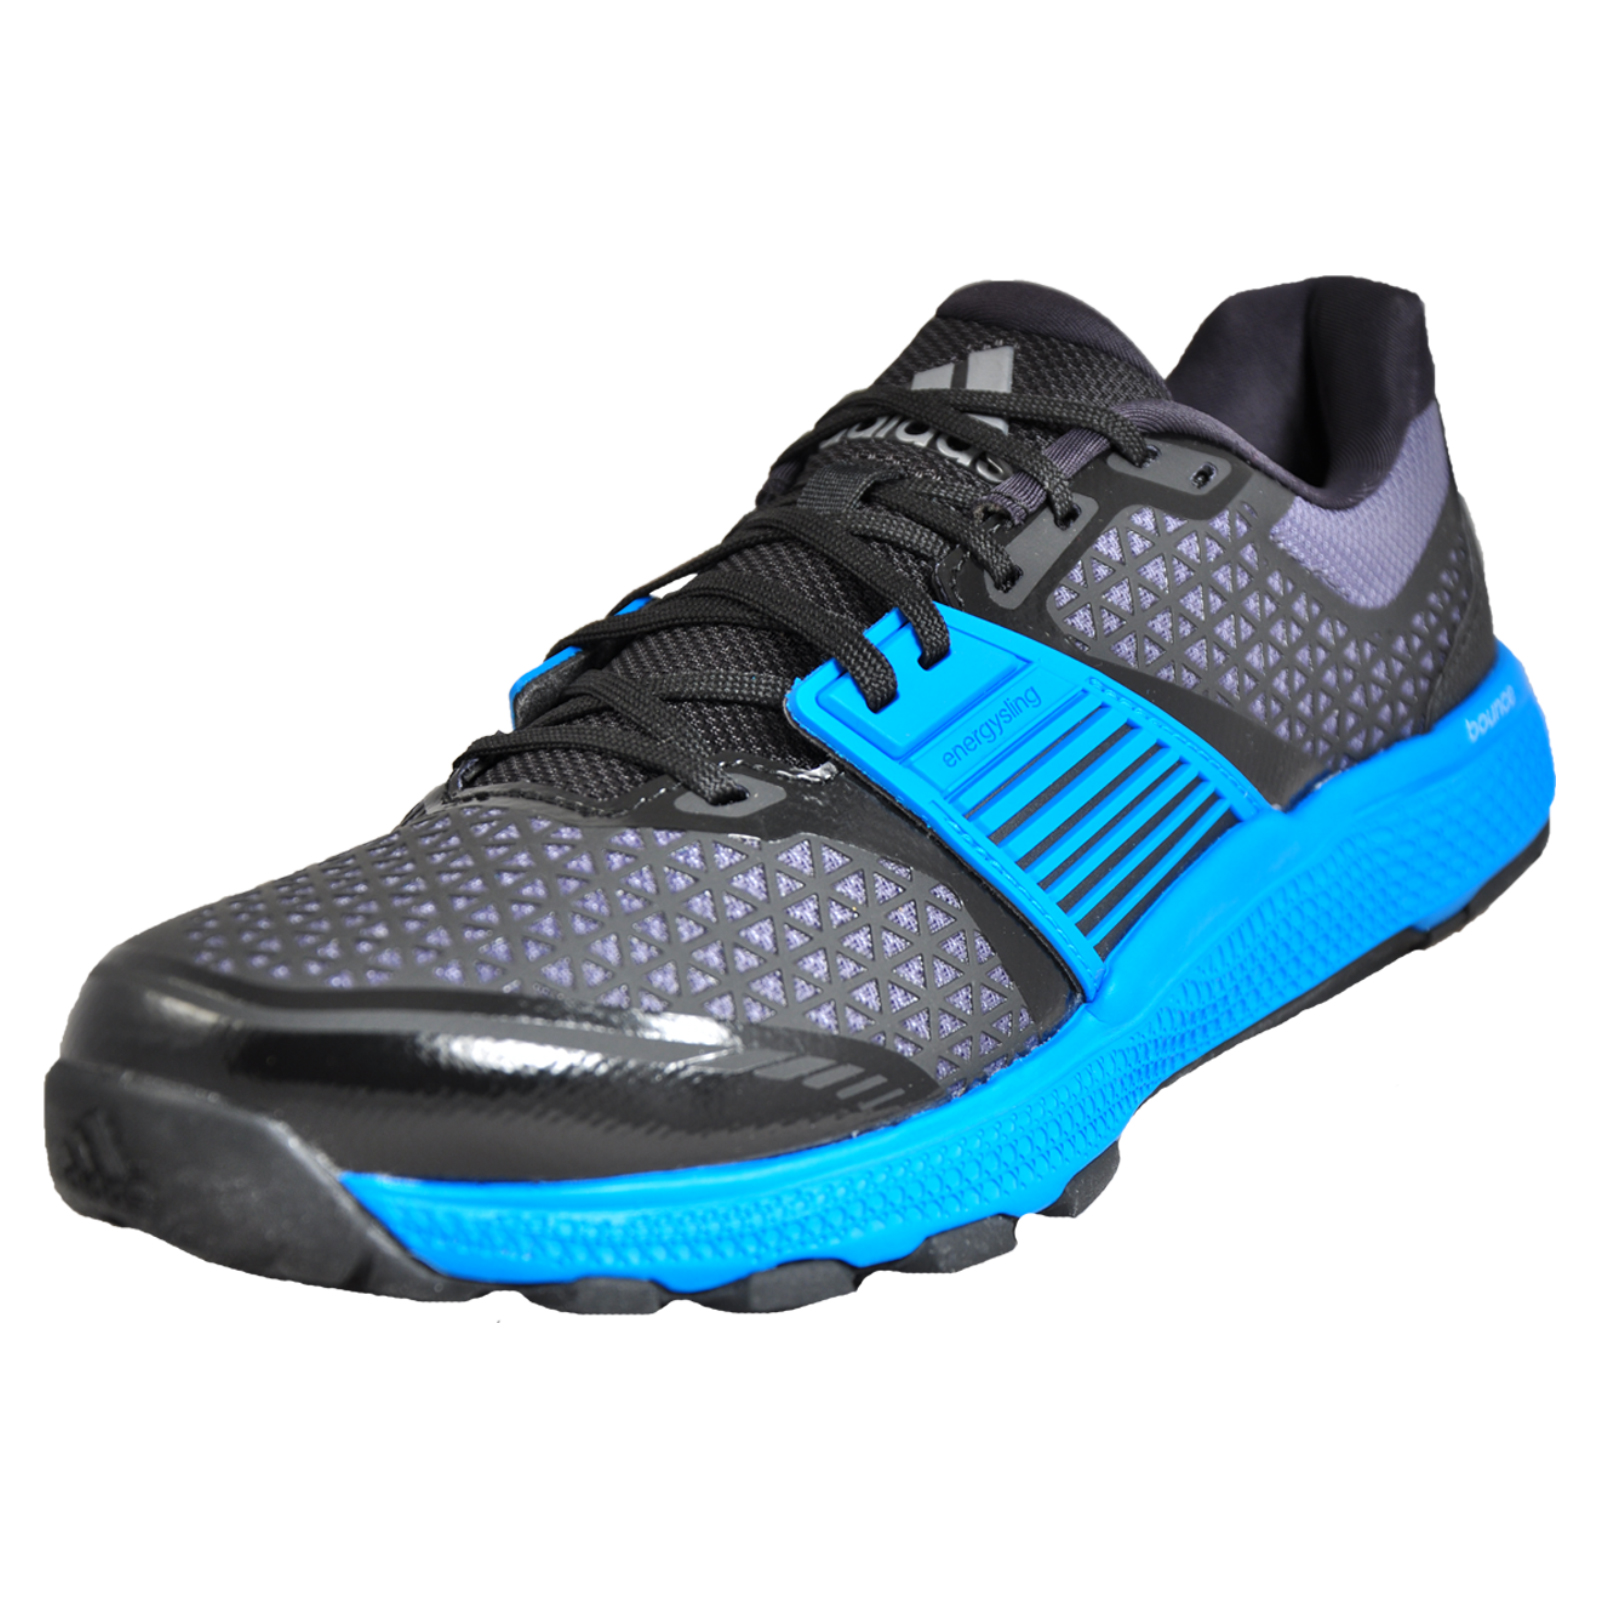 the best attitude a3813 29f63 Adidas CrazyTrain Bounce Men s Running Shoes Fitness Gym Trainers Black